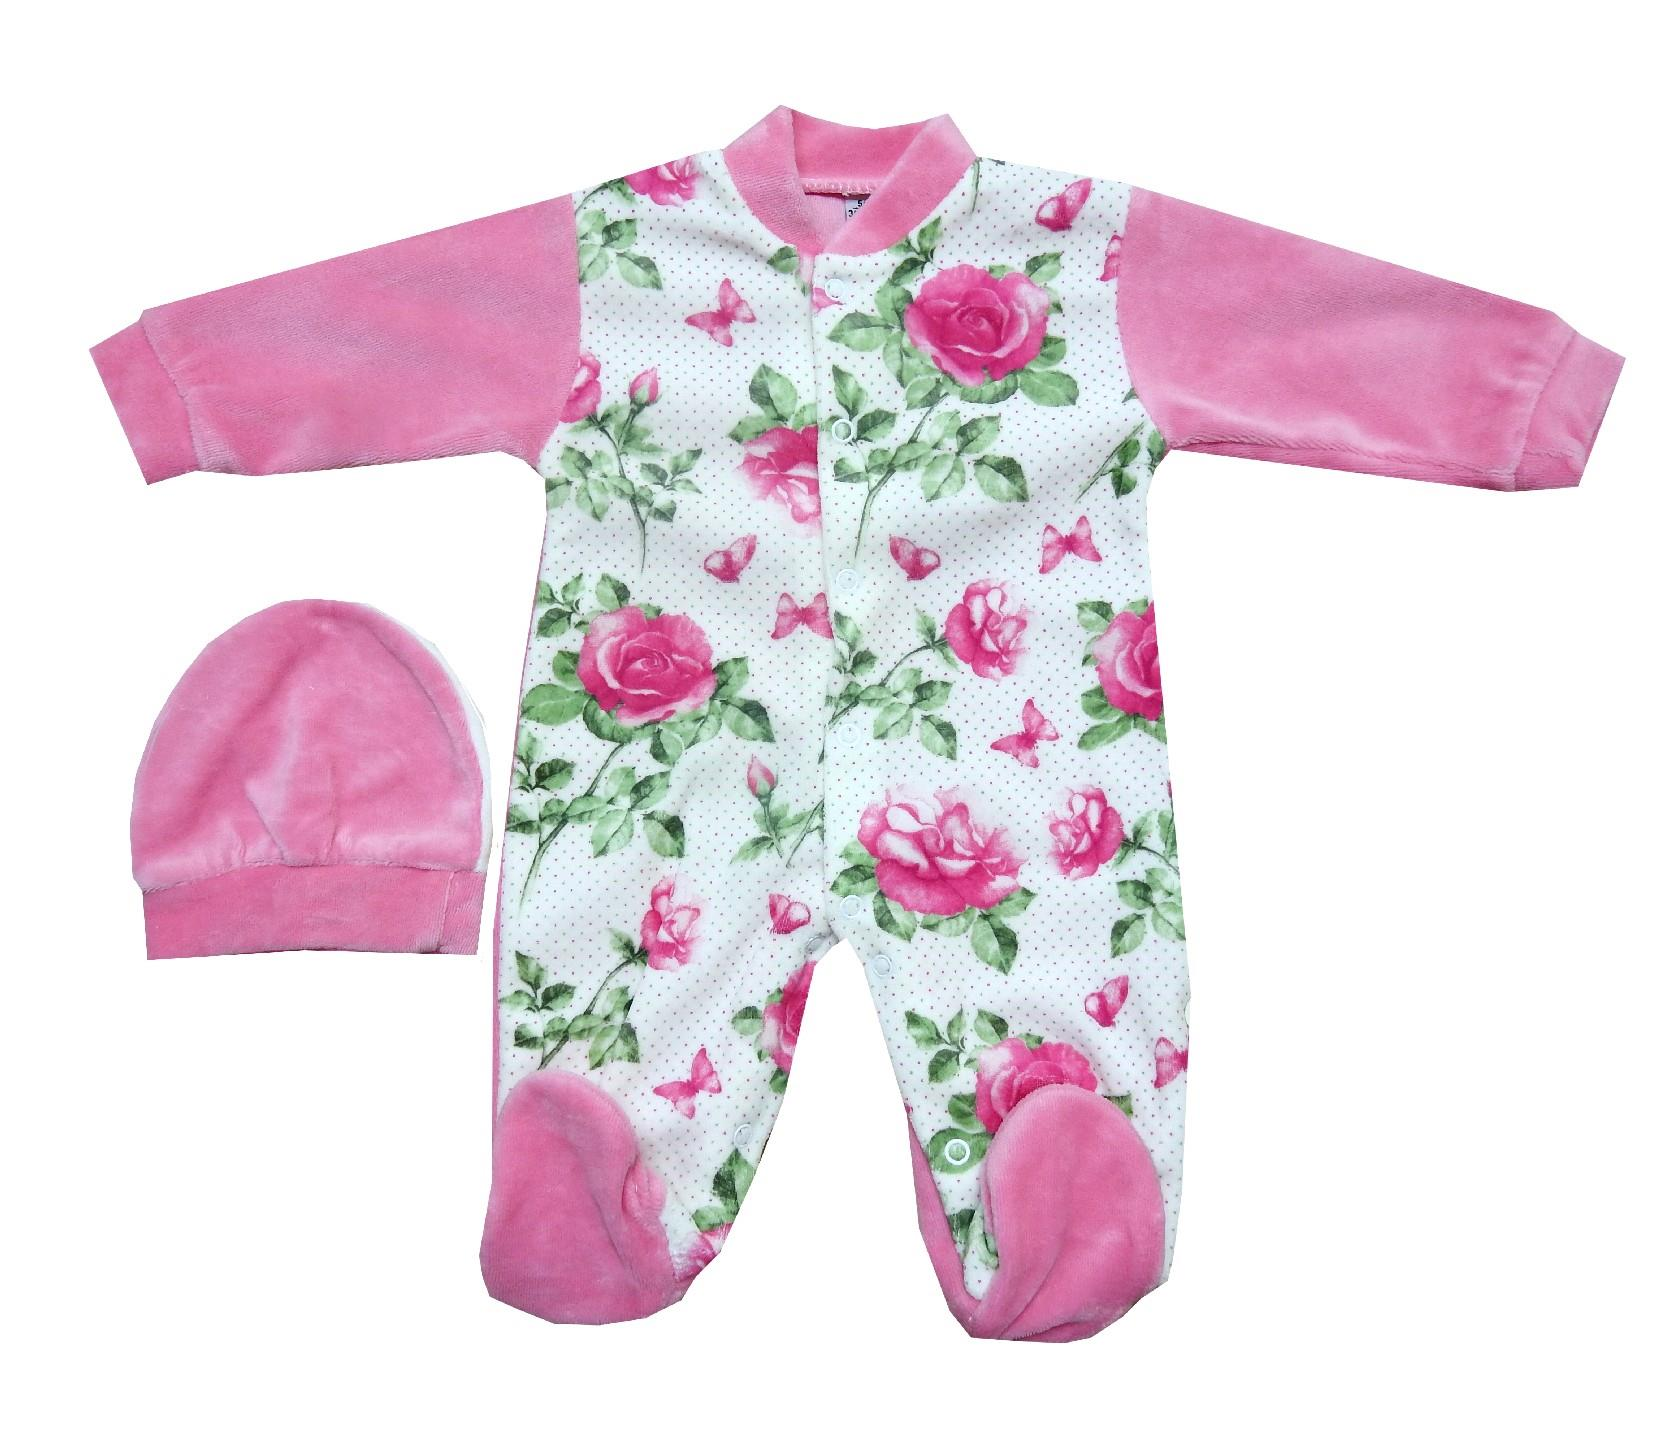 694 wholesale flower embroidery velvet romper for girl (3-6-9 month)